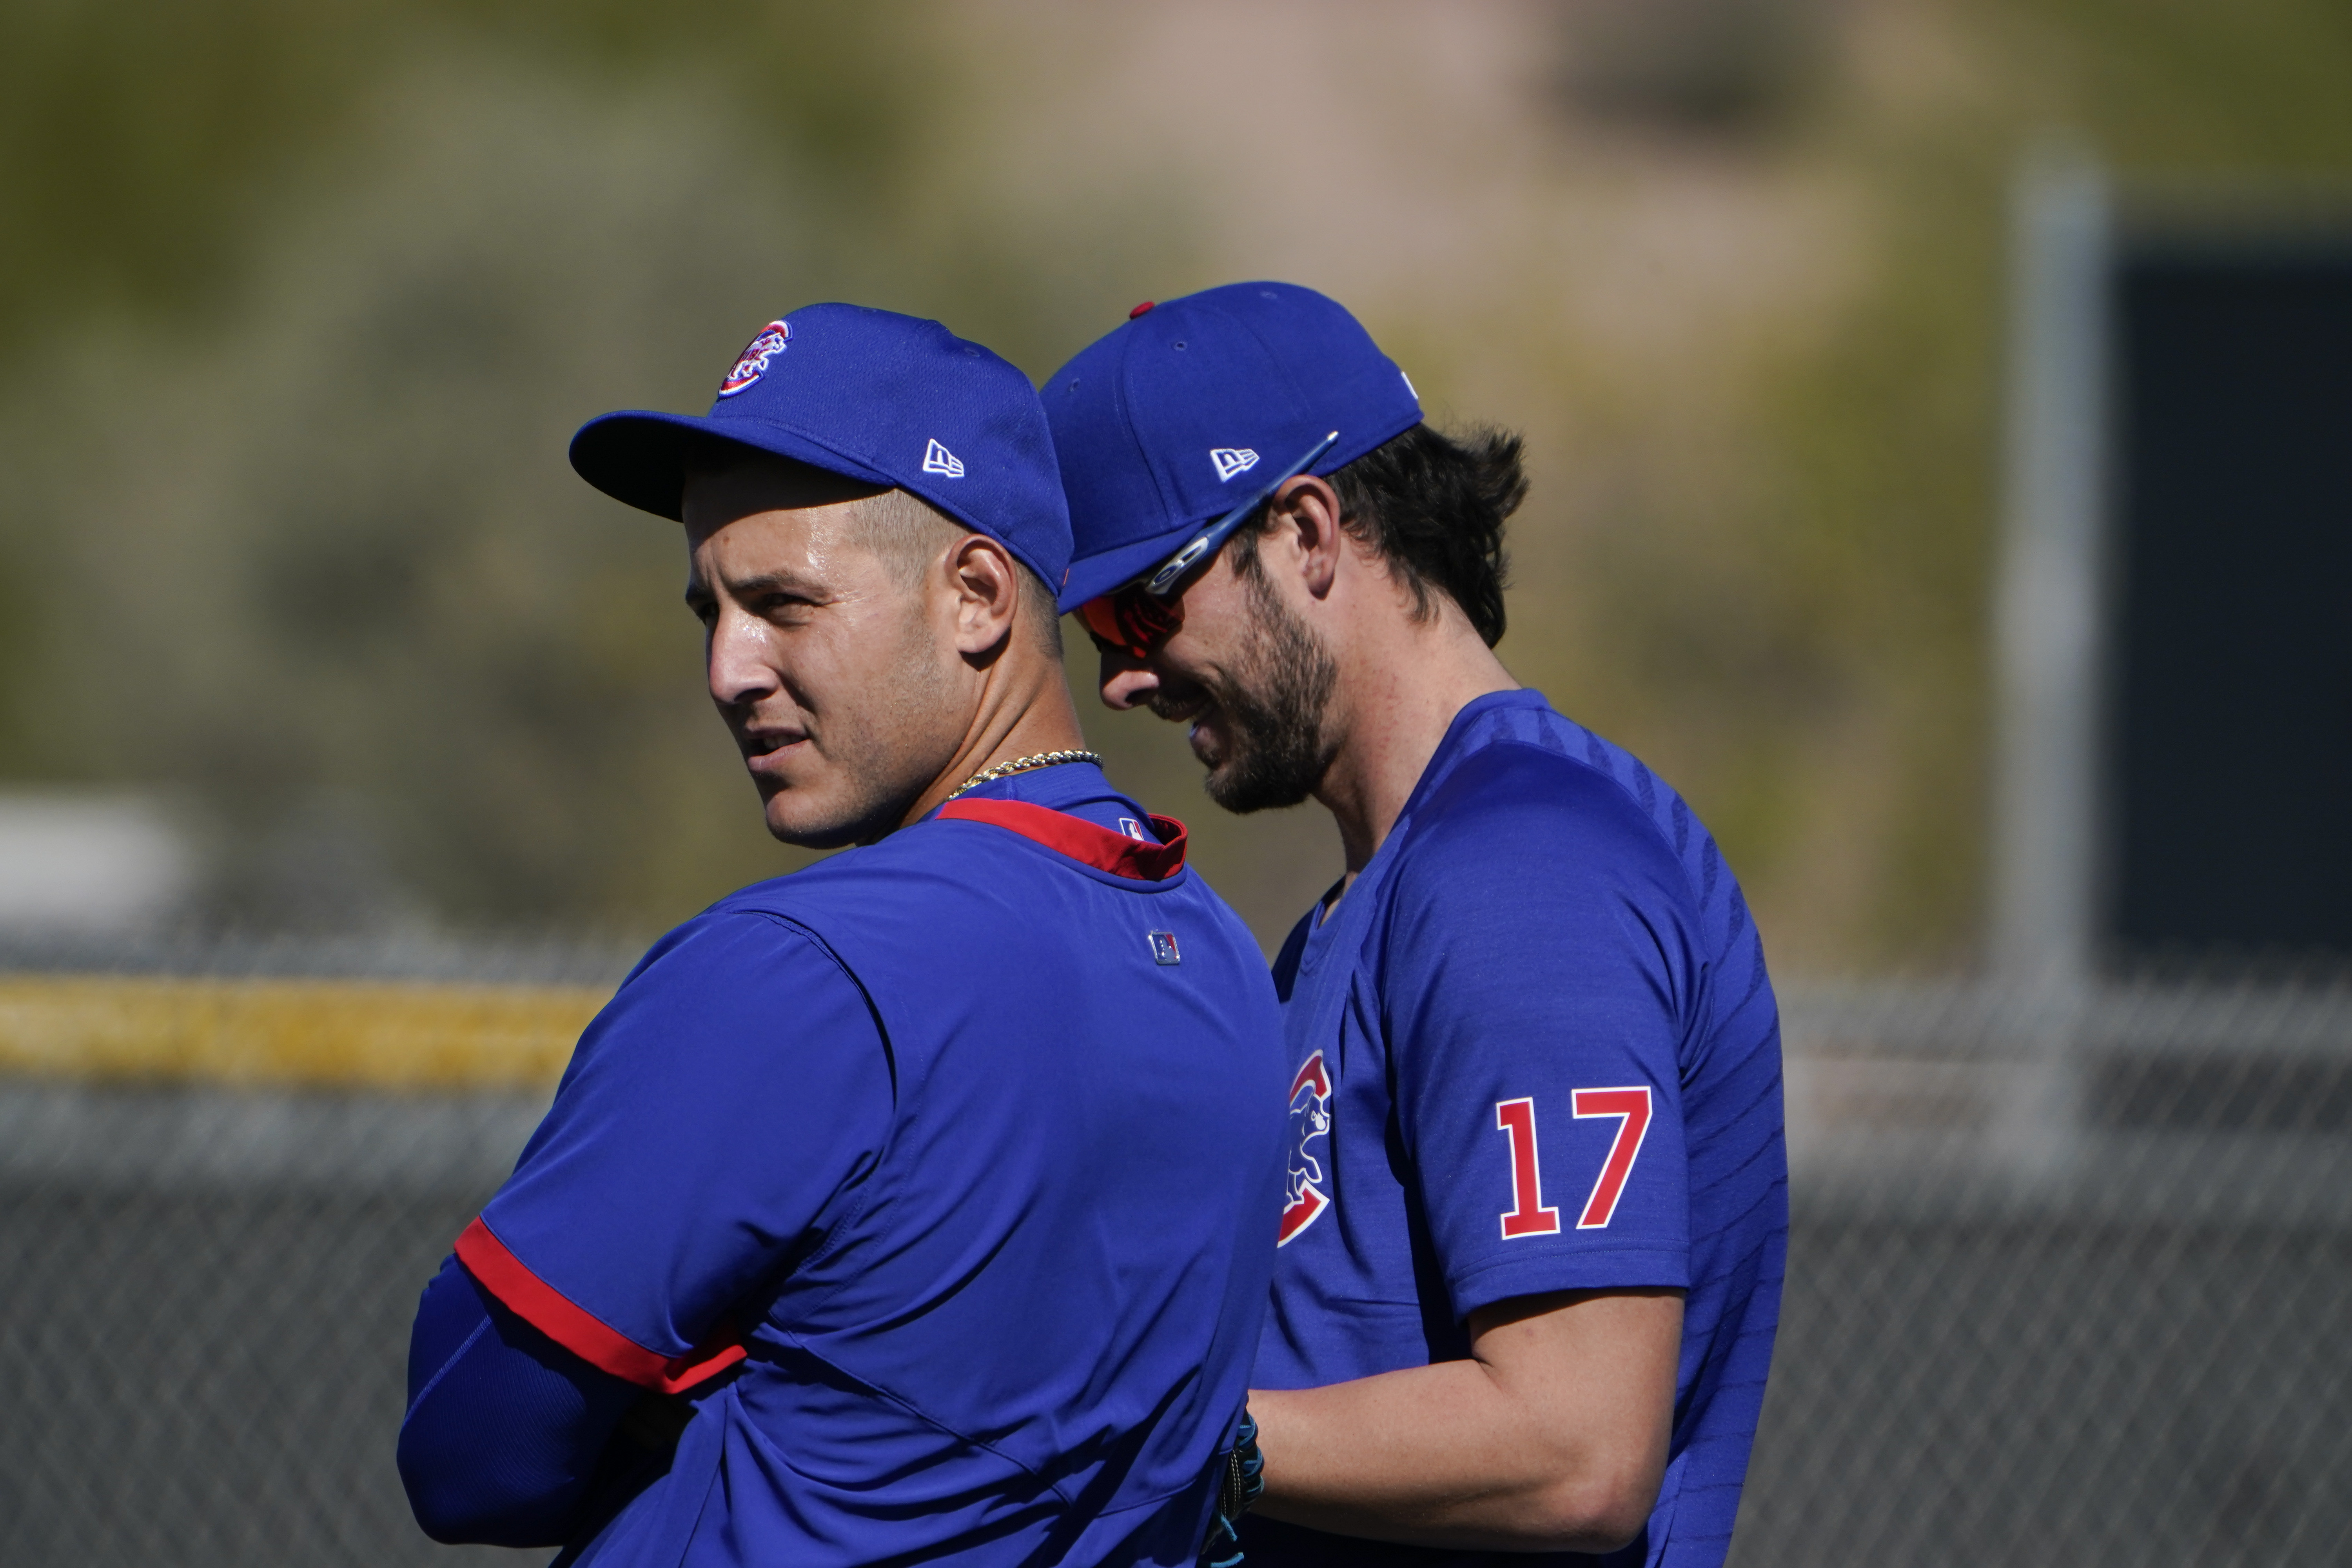 Anthony Rizzo (left) stands next to Kris Bryant during Monday's spring training workout in Mesa, Arizona.